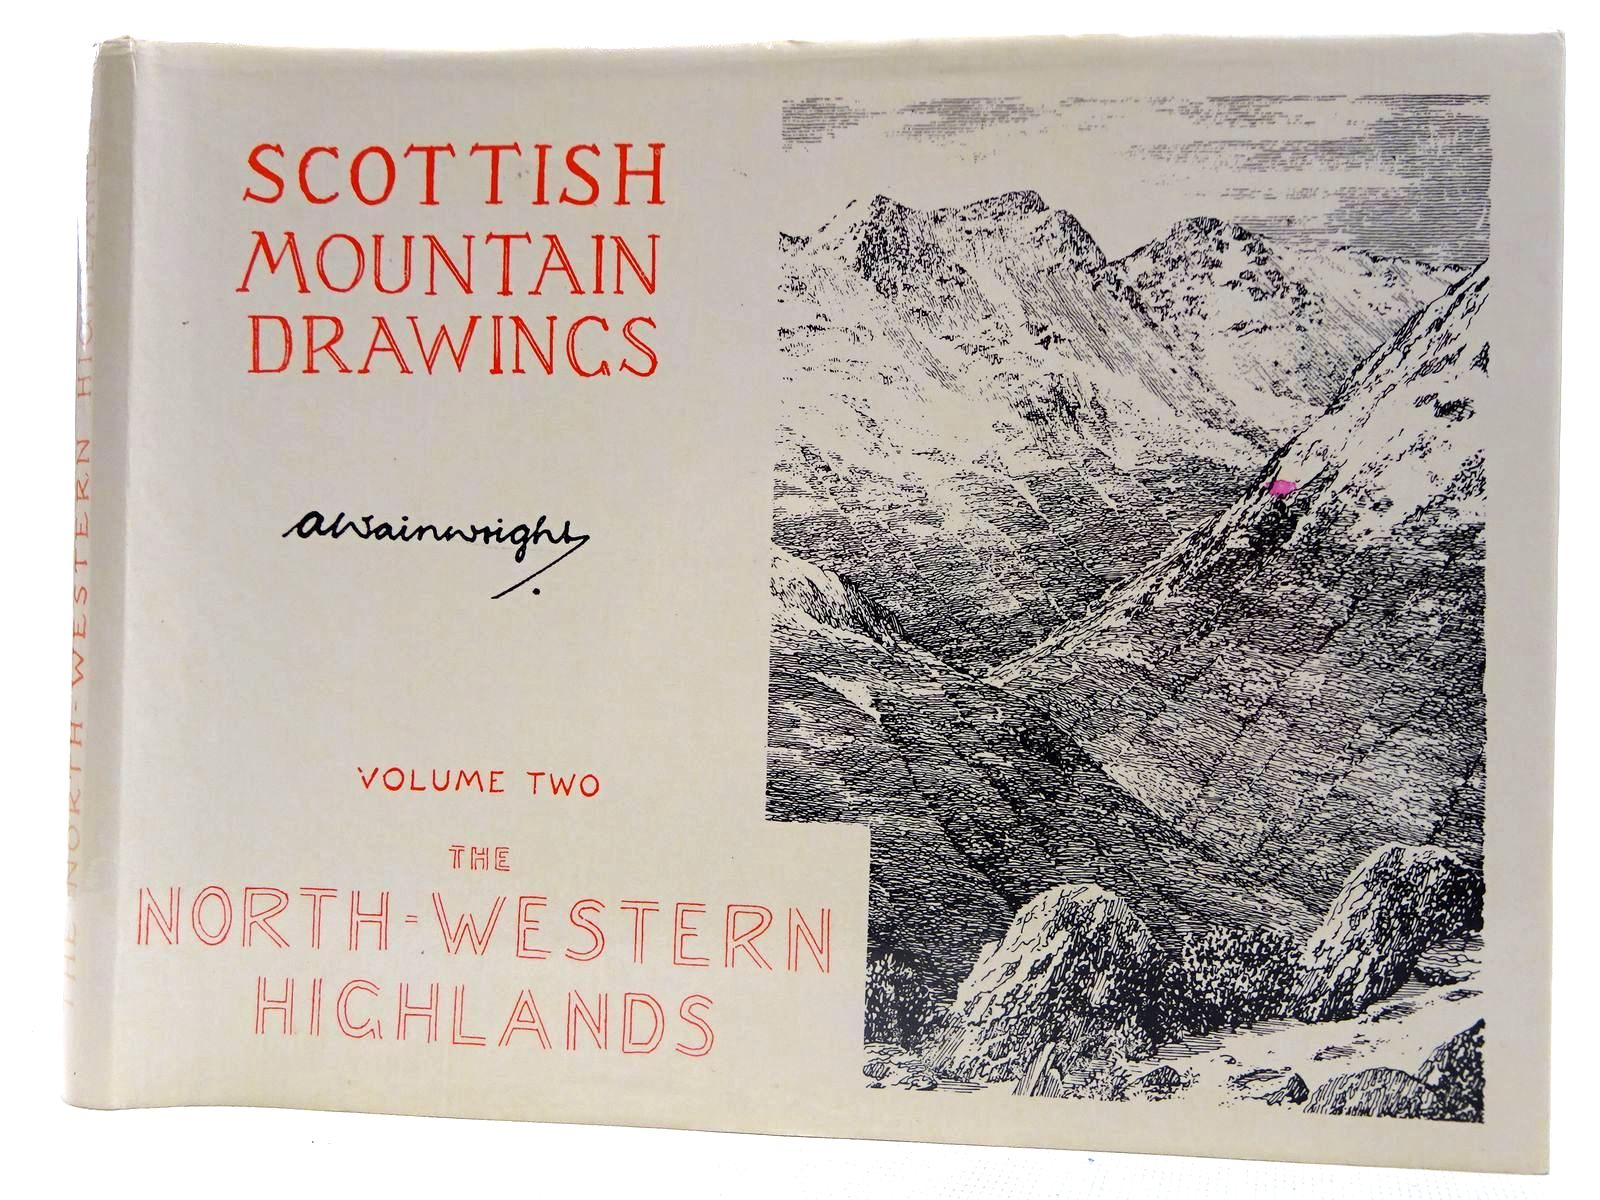 Photo of SCOTTISH MOUNTAIN DRAWINGS VOLUME TWO THE NORTH-WESTERN HIGHLANDS written by Wainwright, Alfred illustrated by Wainwright, Alfred published by Westmorland Gazette (STOCK CODE: 2127730)  for sale by Stella & Rose's Books